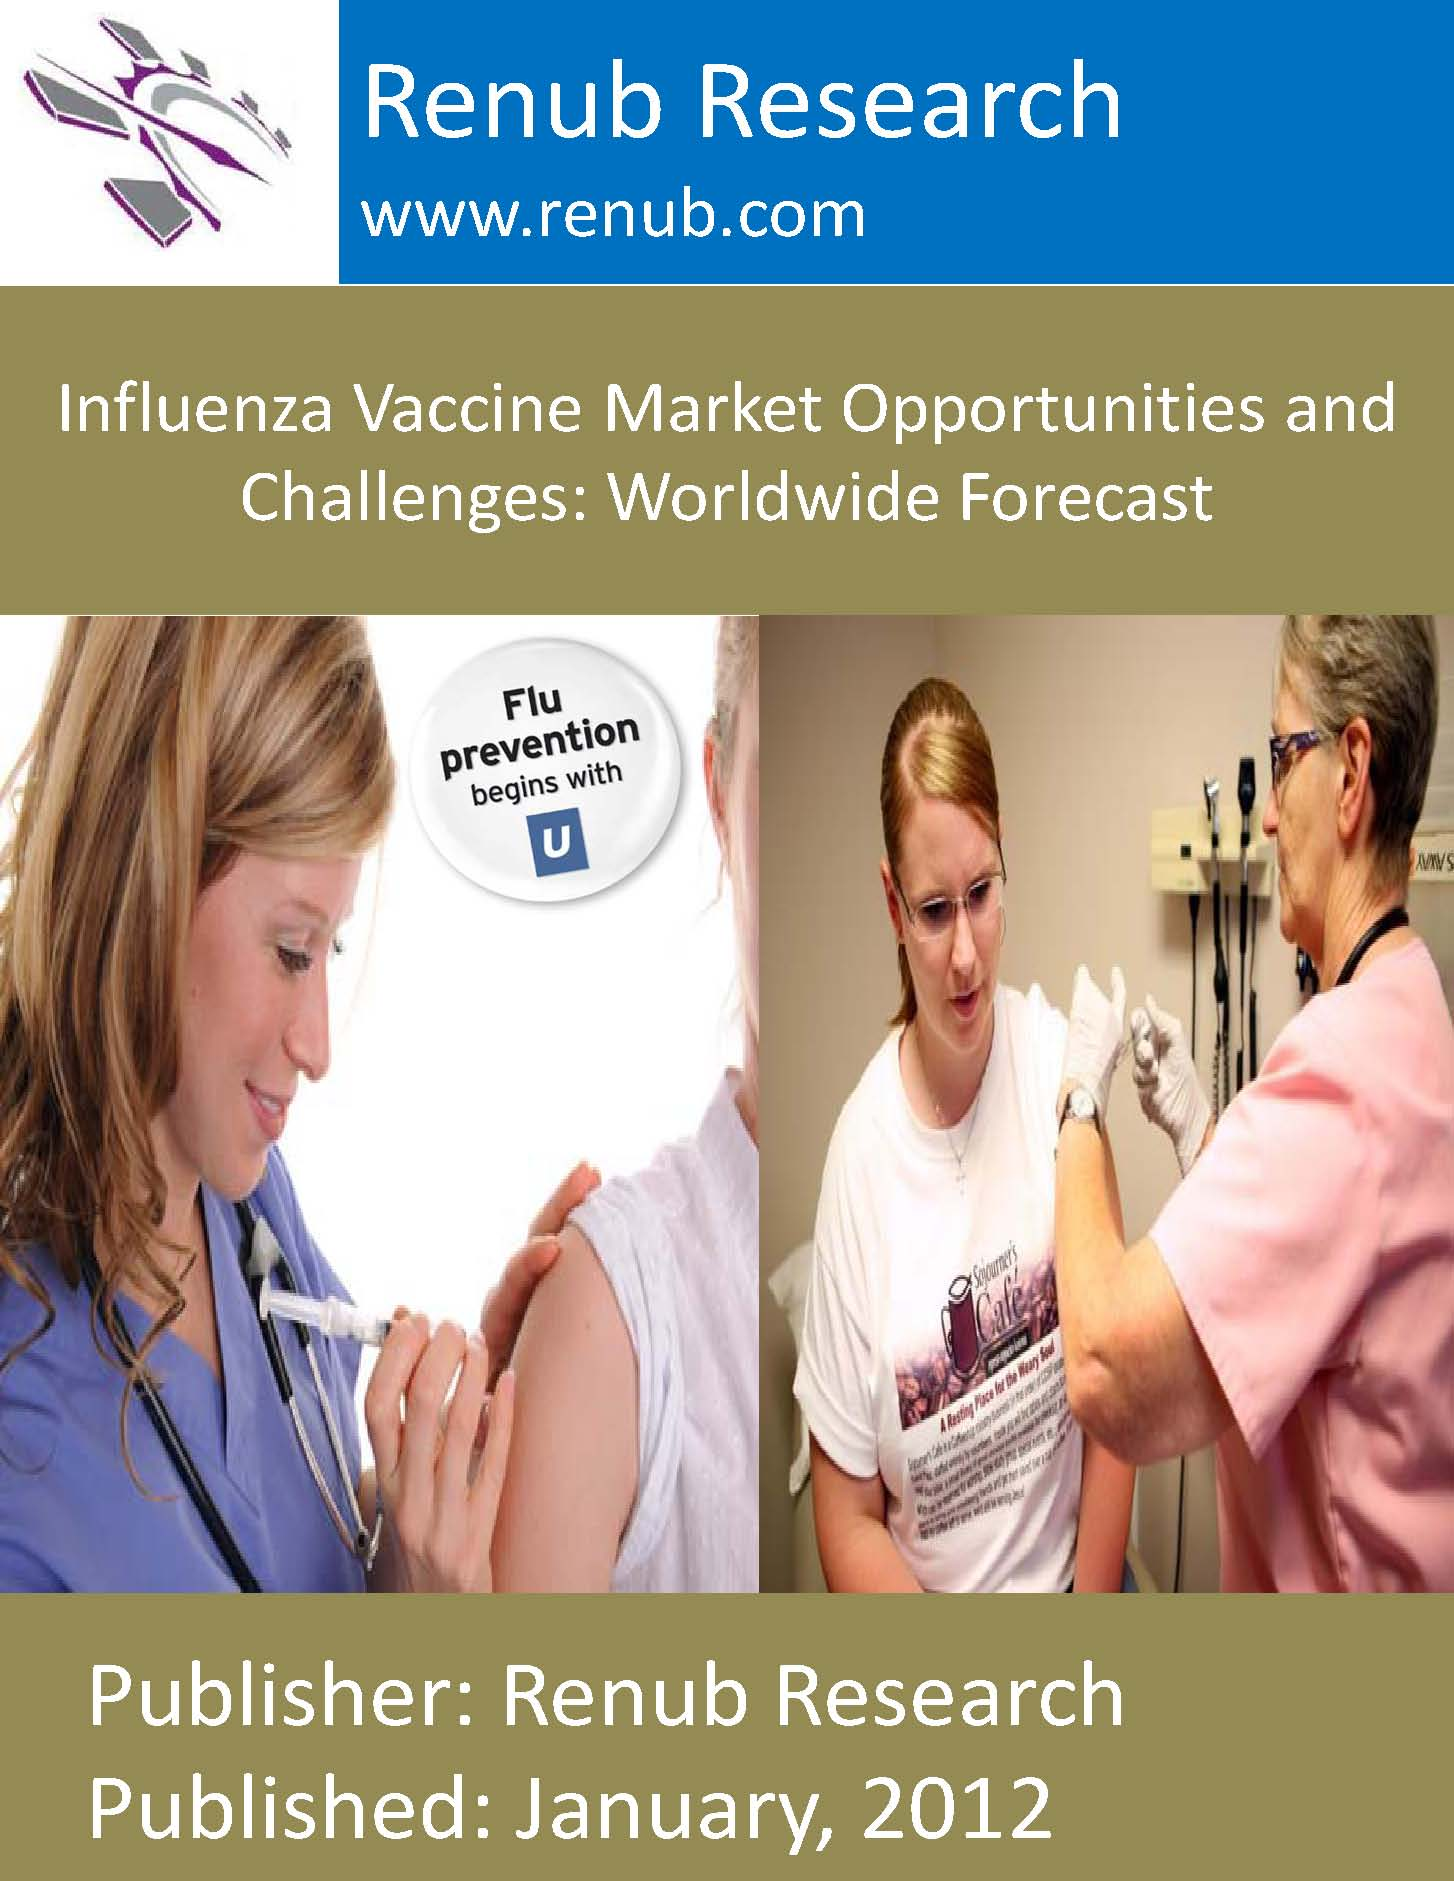 Influenza Vaccine Market Opportunities and Challenges: Worldwide Forecast